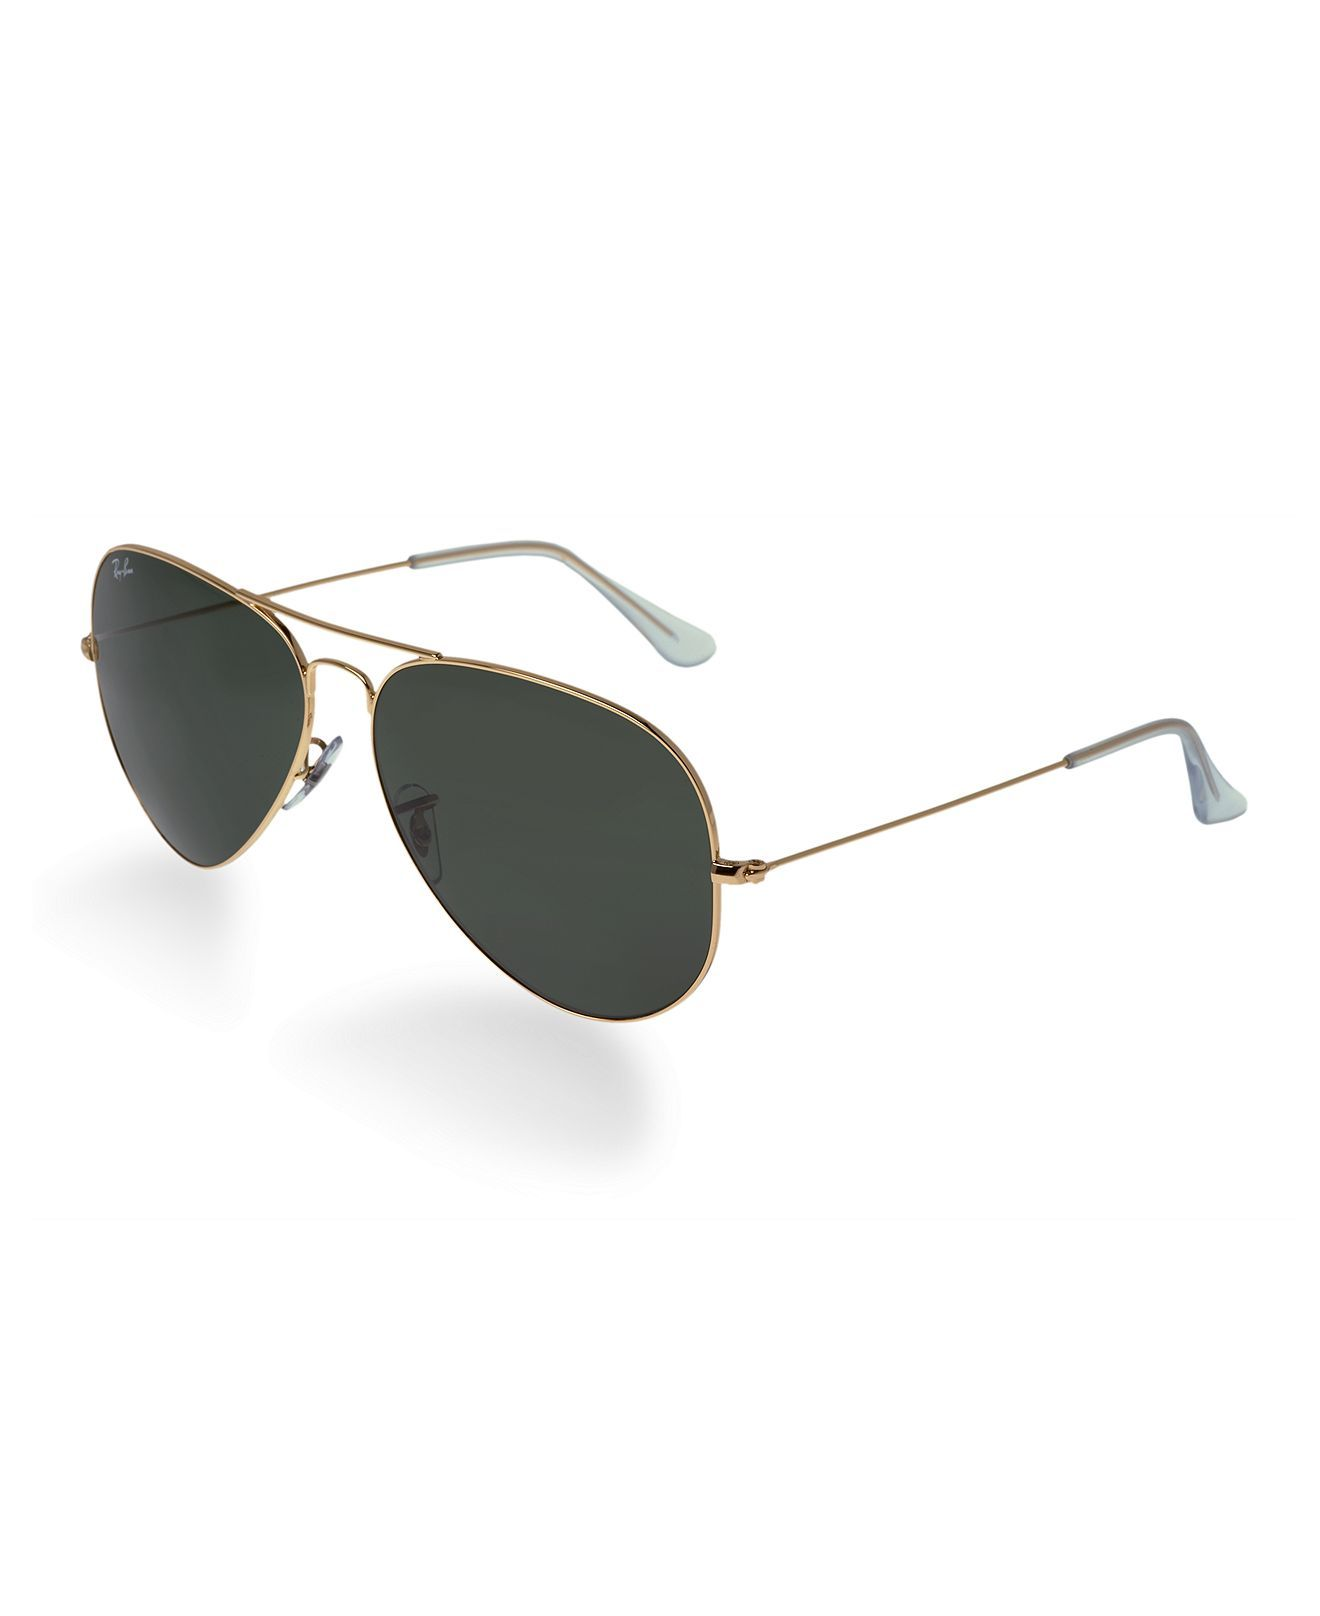 Ray-Ban Sunglasses, RB3026 Aviator - Sunglasses - Handbags   Accessories -  Macy s. LentesCarasGafas De Sol ... 0aef125103